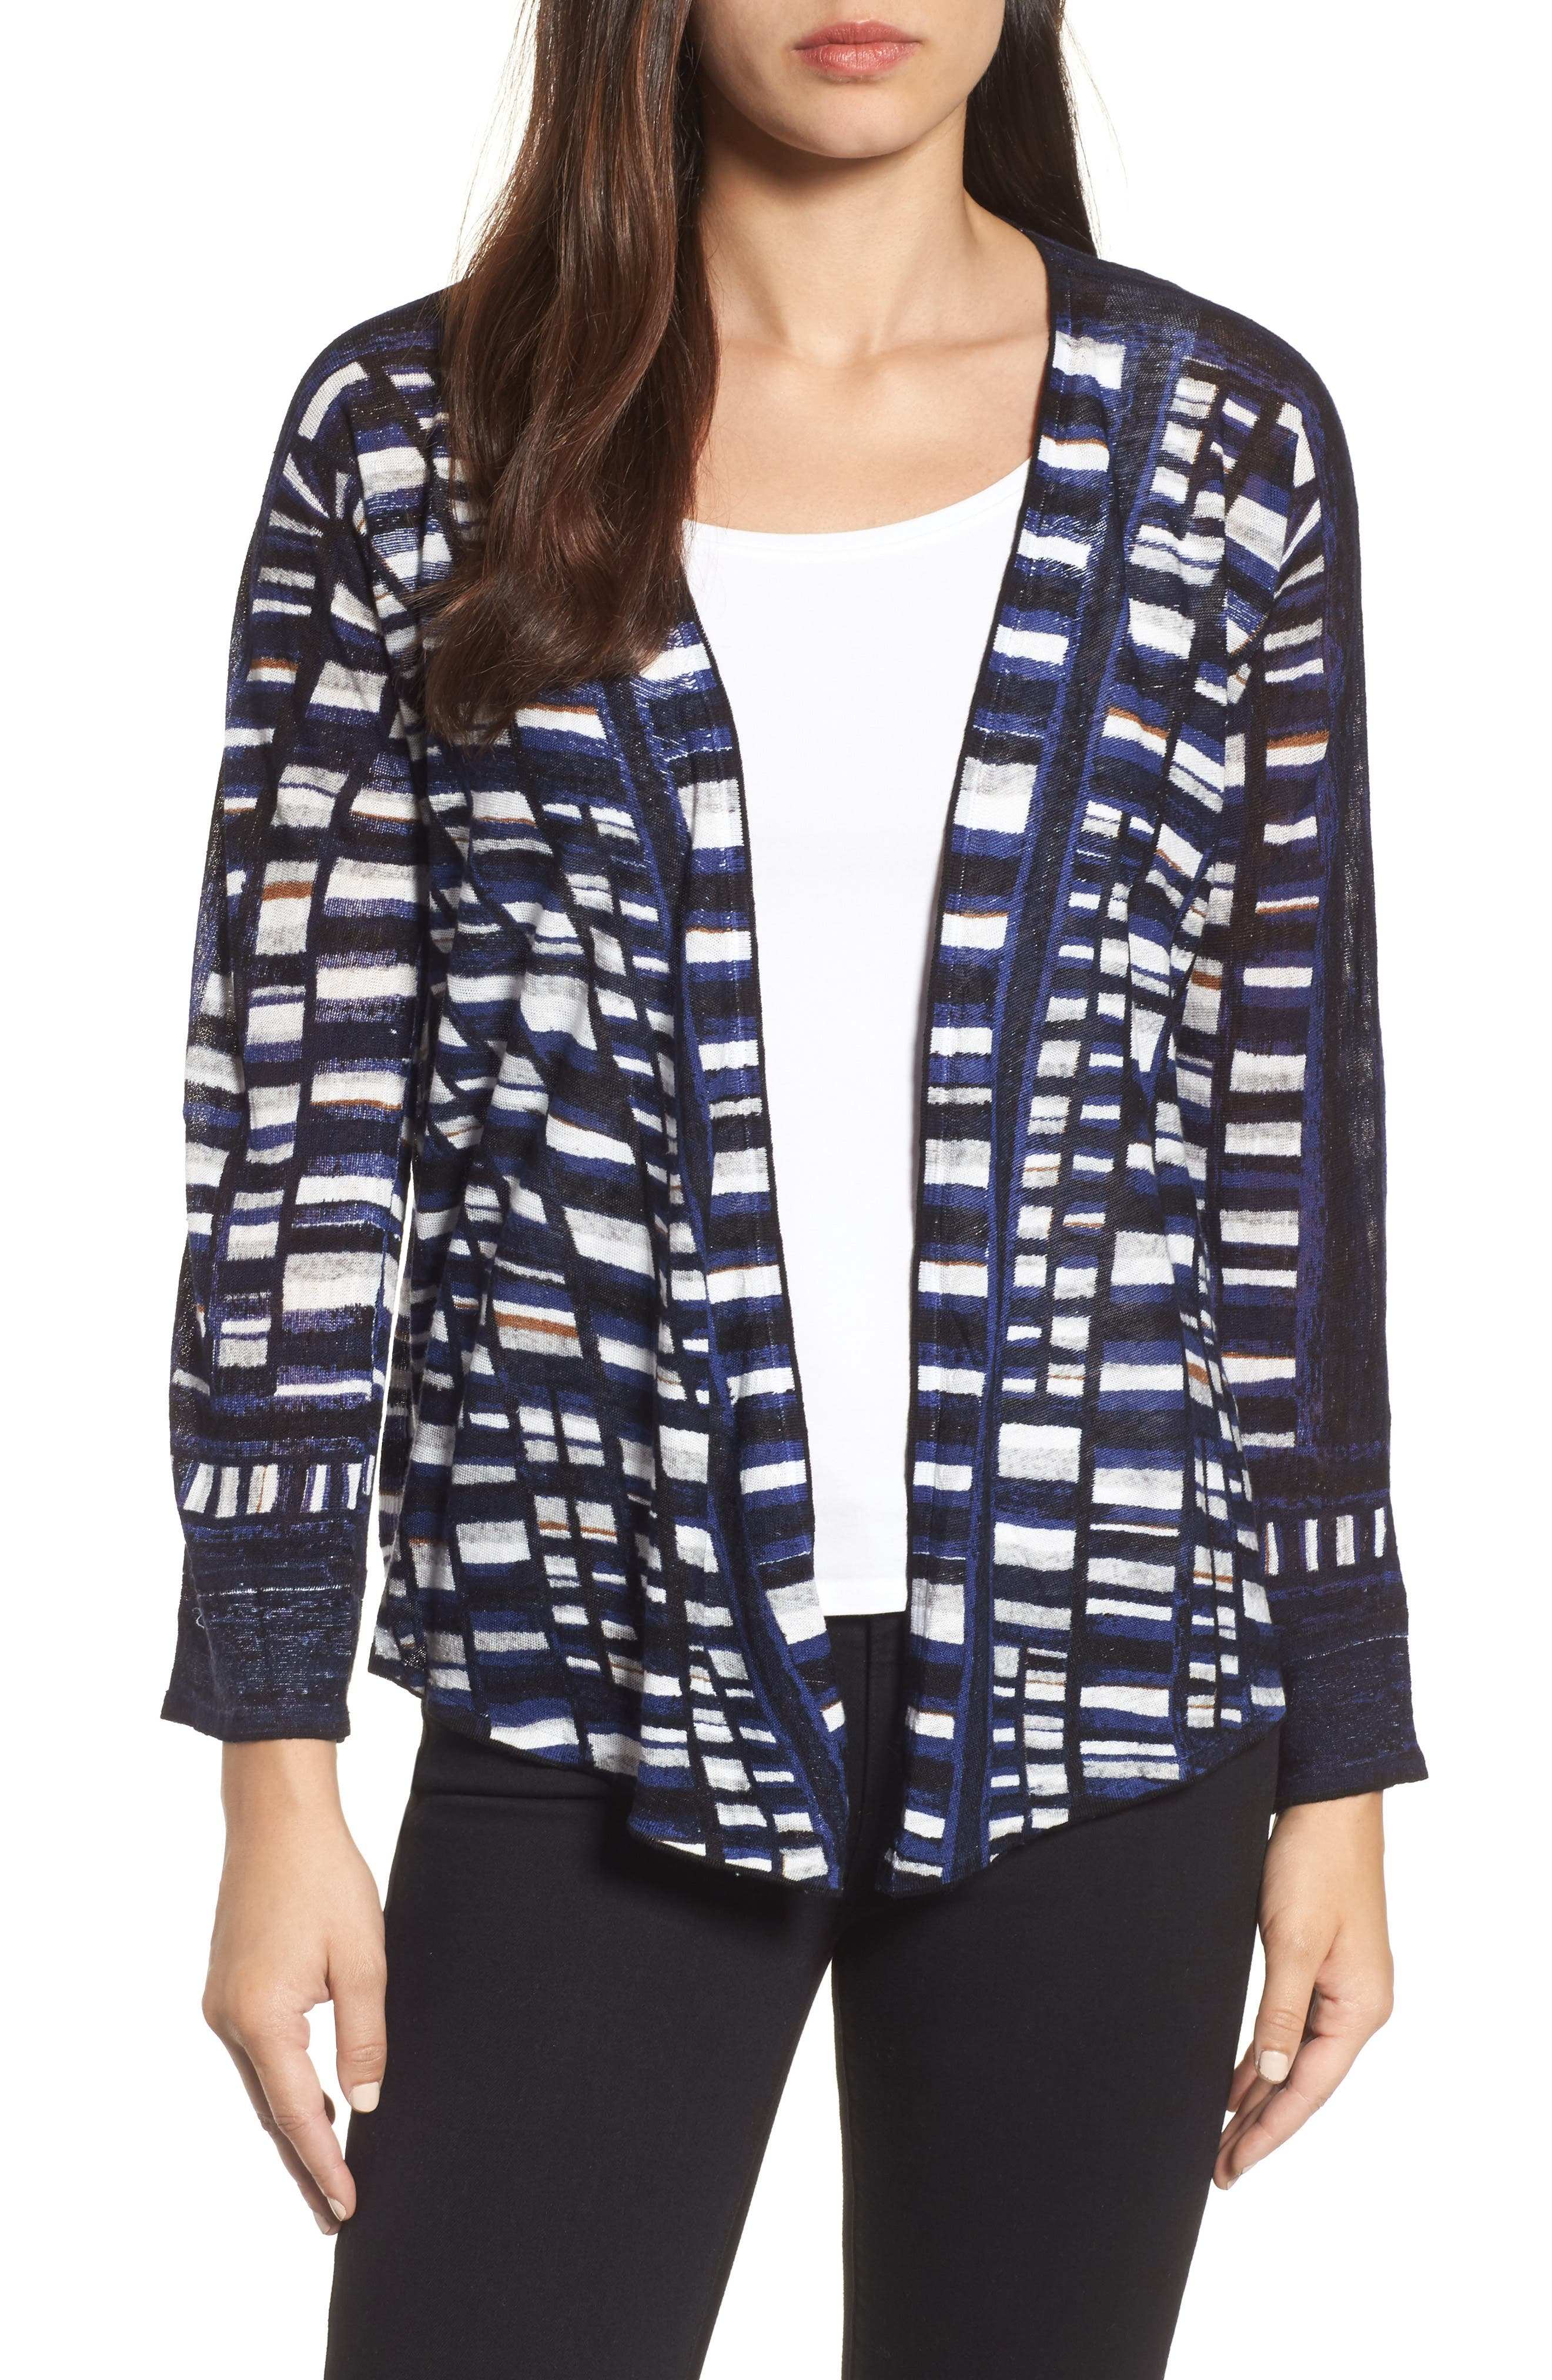 Window Light 4-Way Convertible Cardigan,                         Main,                         color, 499